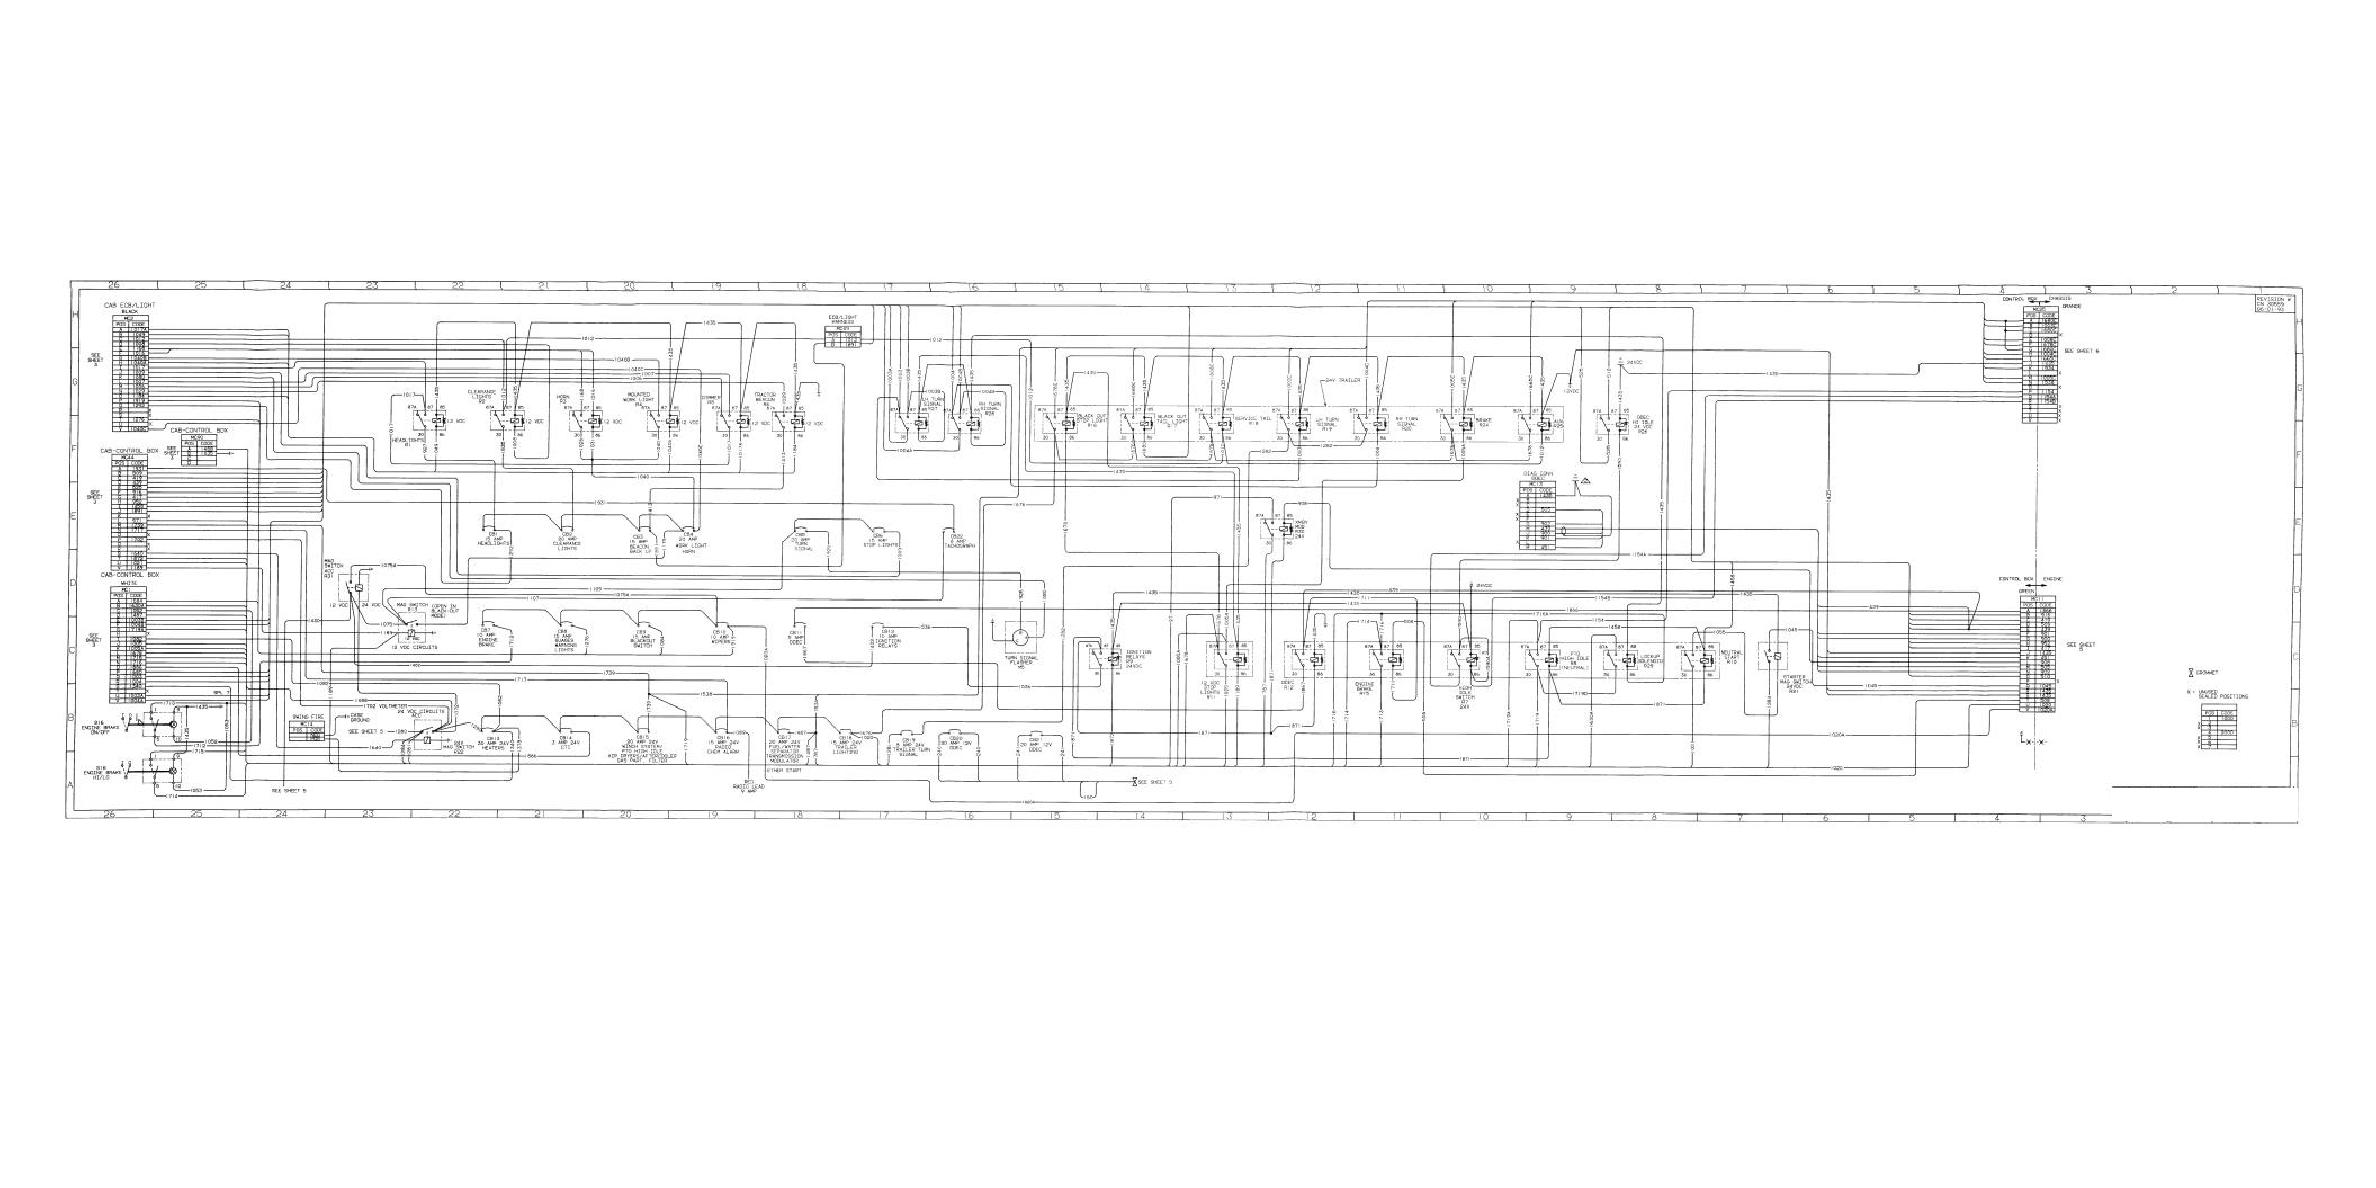 Figure Fo 1 Electrical System Schematic Foldout 5 Of 11